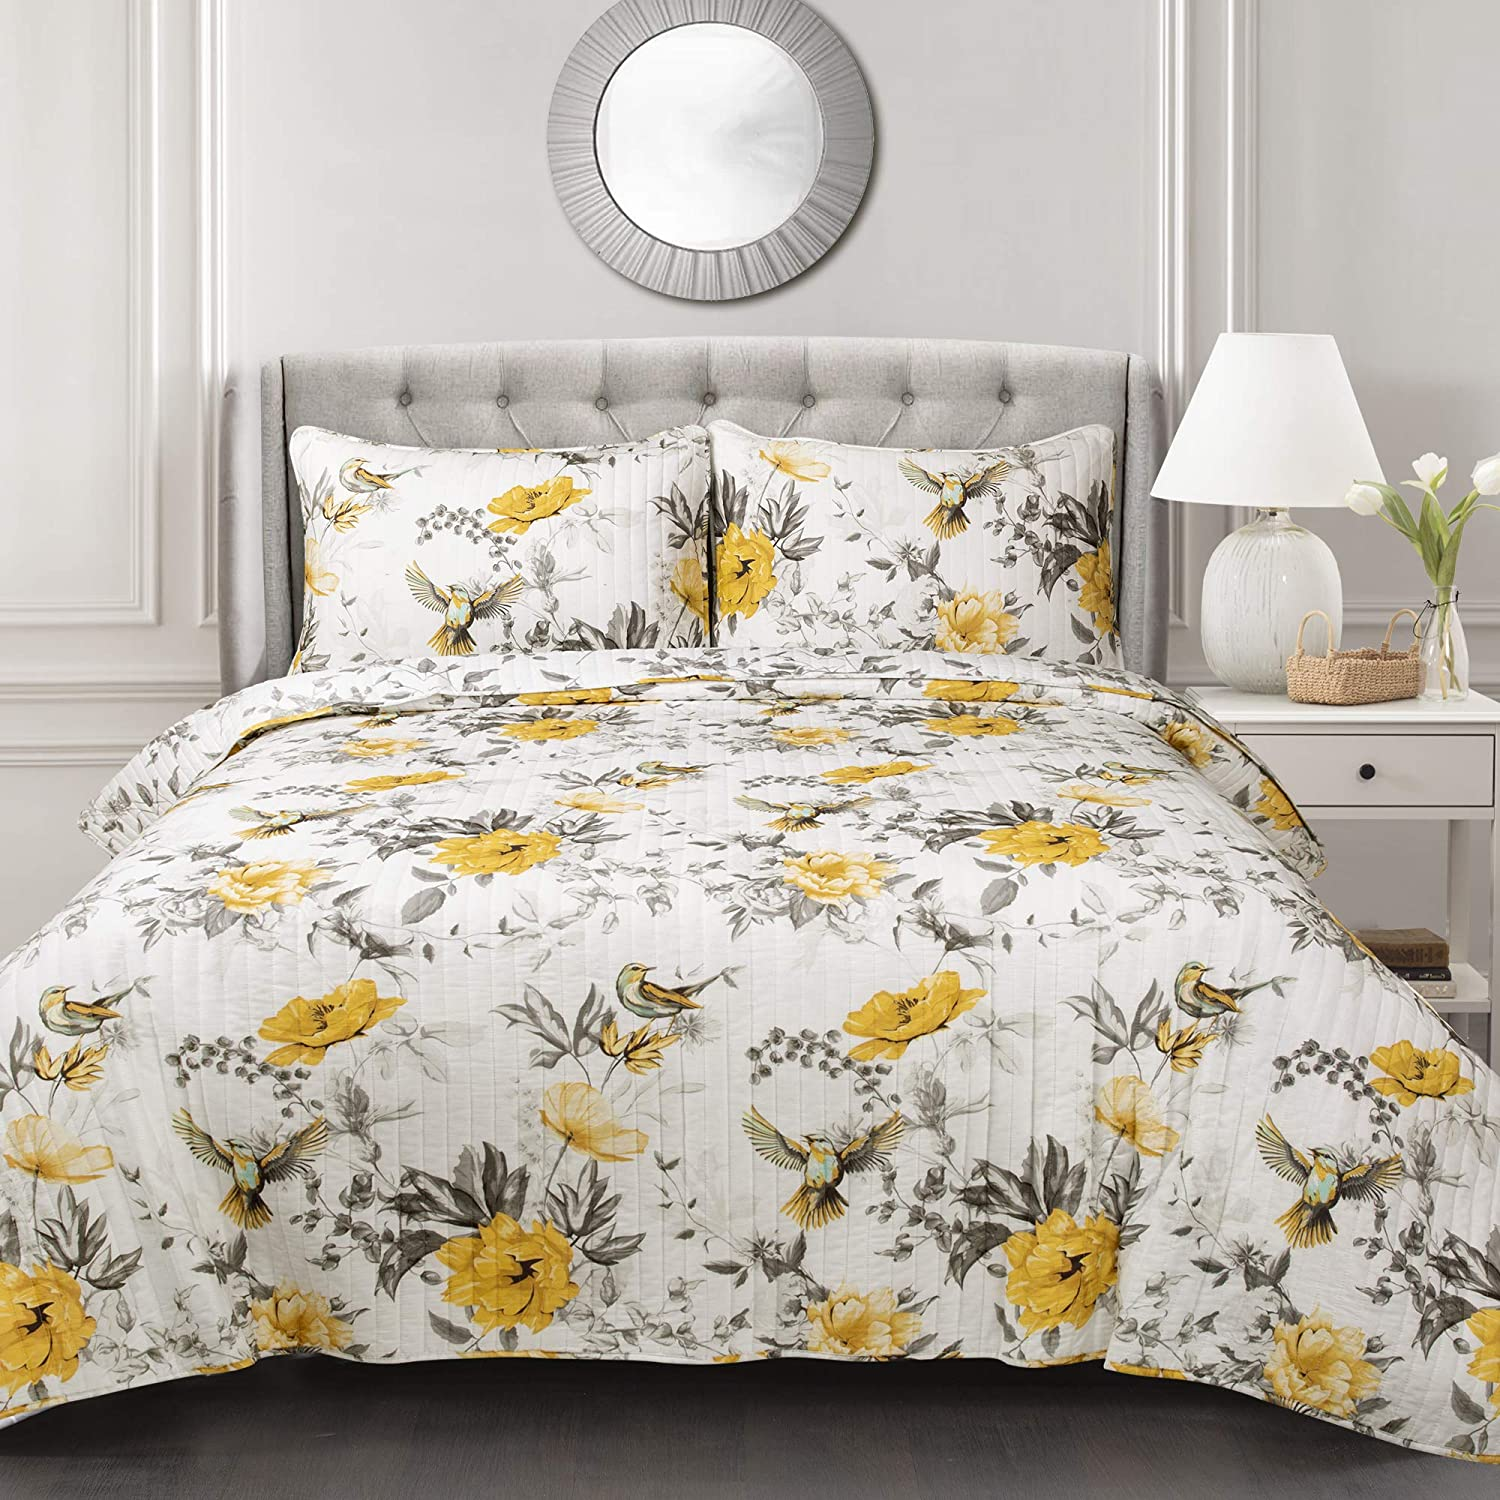 Lush Decor, Yellow & Gray Penrose Floral 3 Piece Quilt Set, King